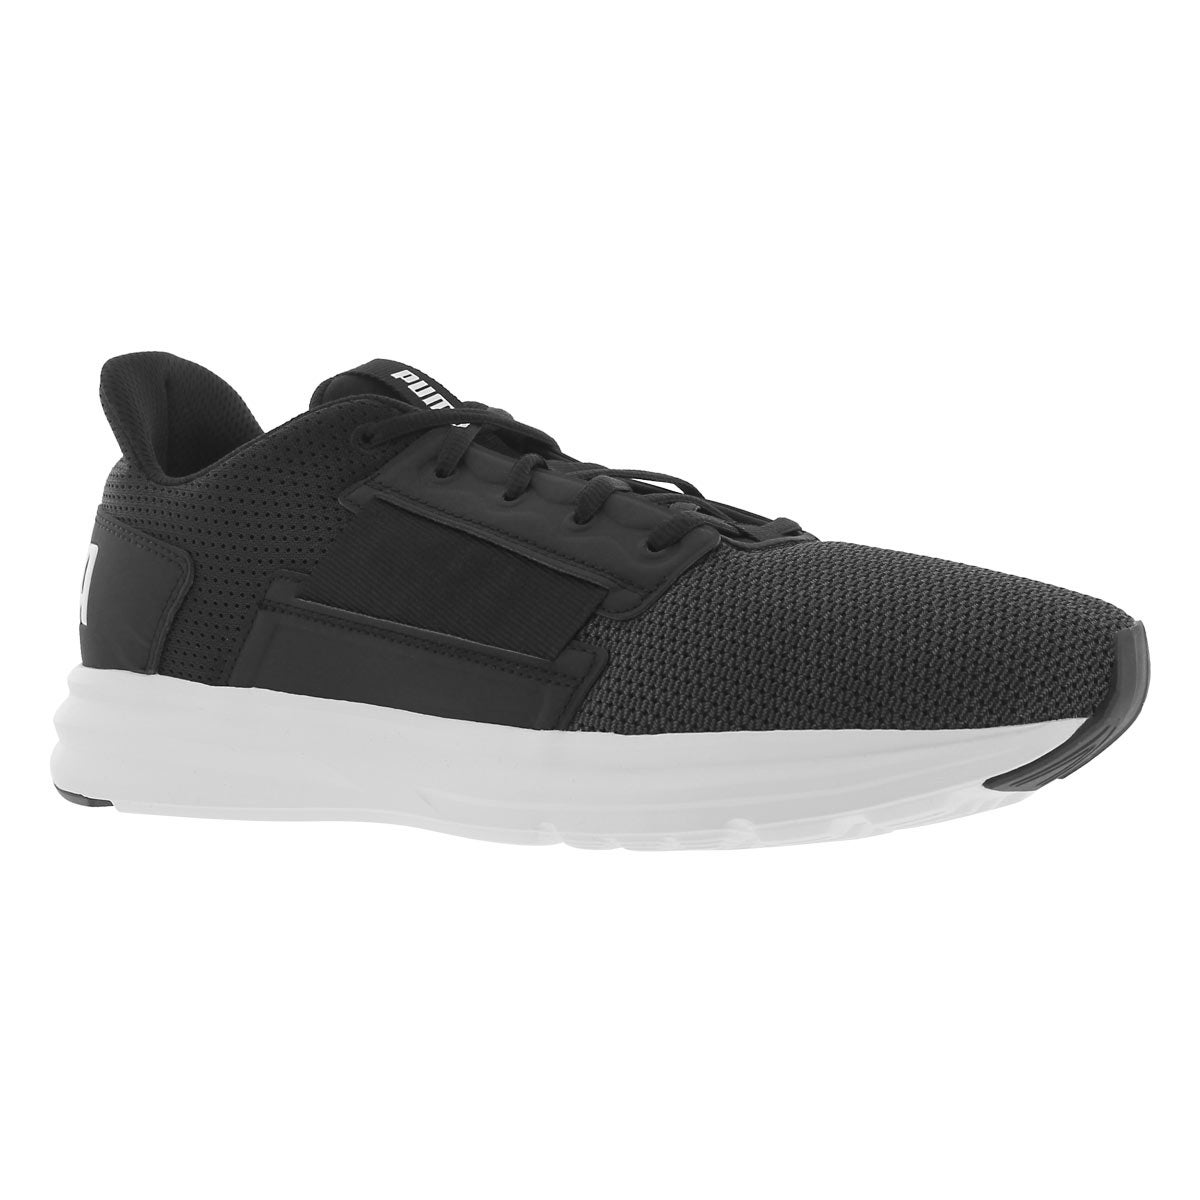 Men's ENZO STREET black sneakers